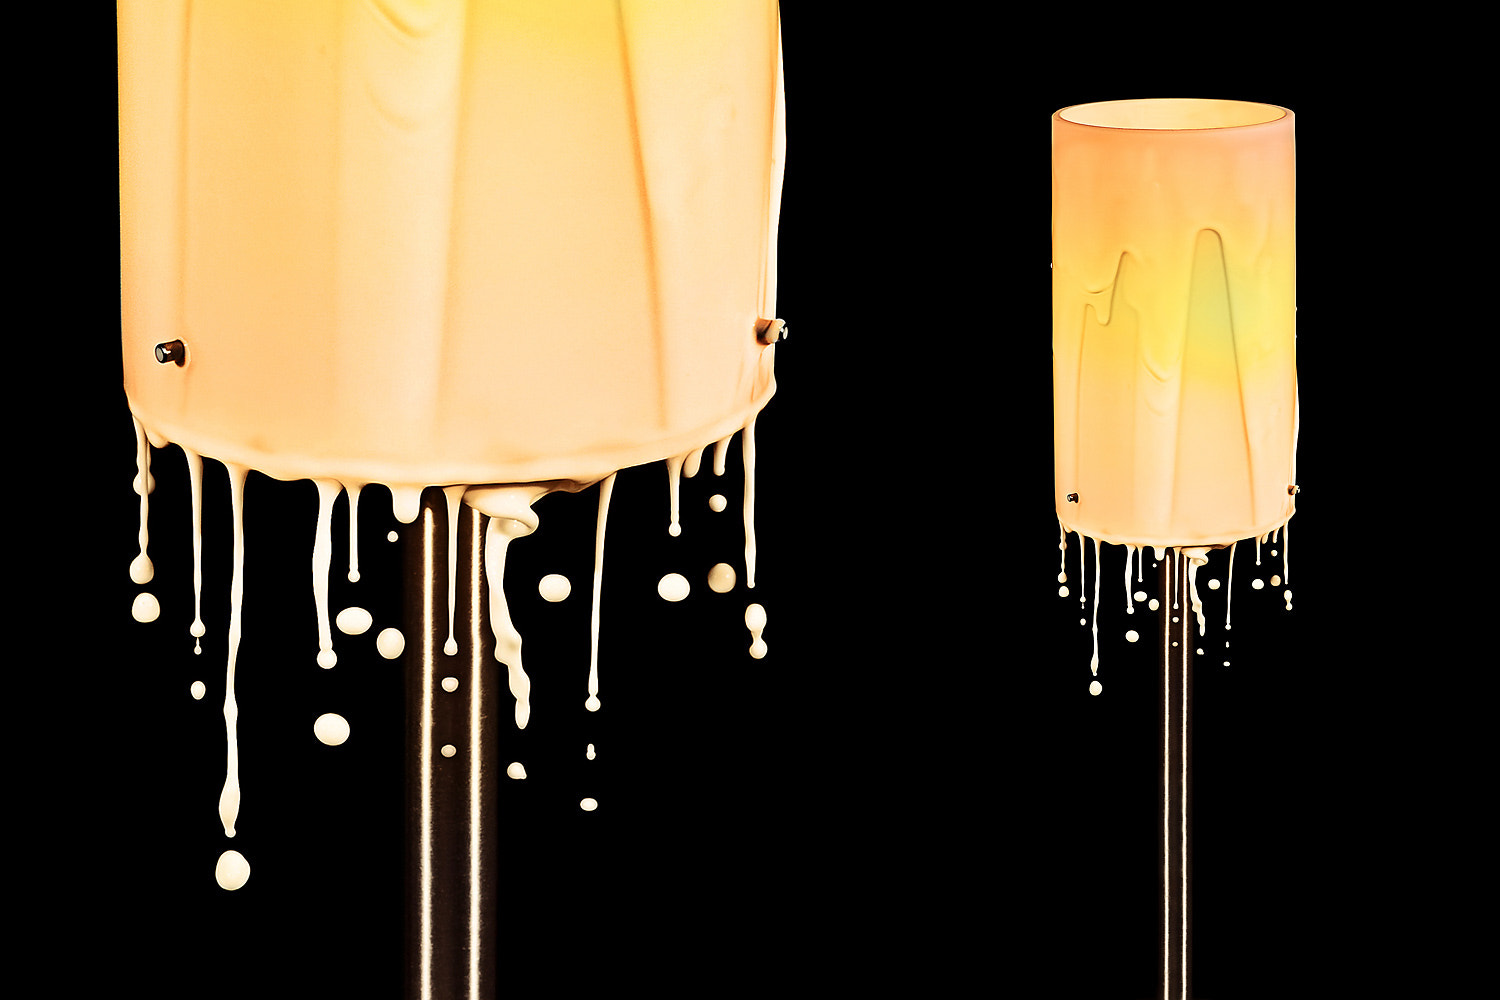 """Photograph """"lavalamp"""" by Christoph Ruhland on 500px"""